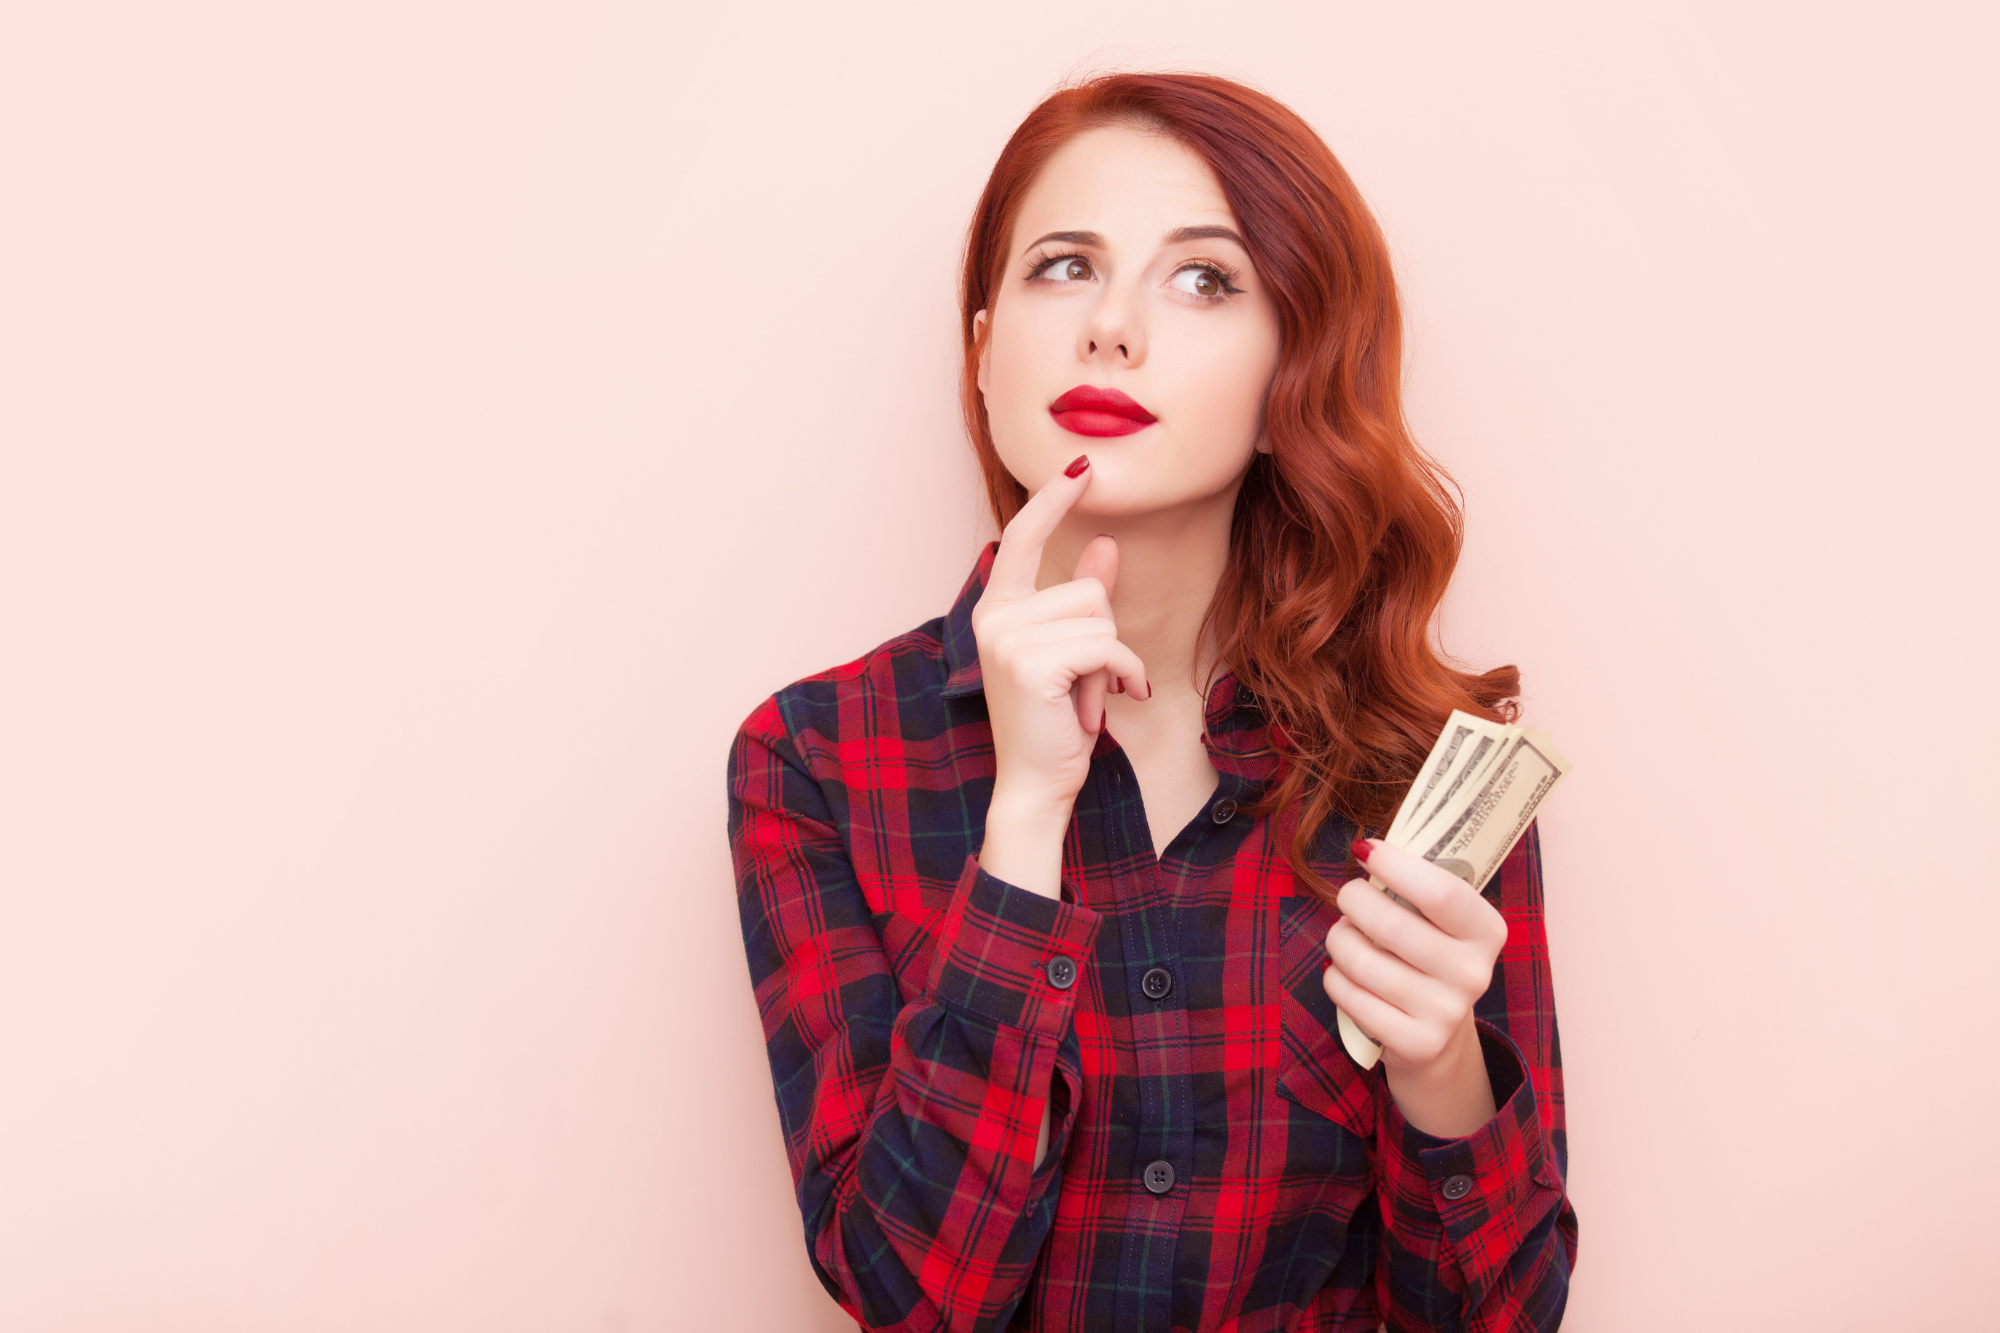 low carb on a budget girl with red hair thinking and holding money